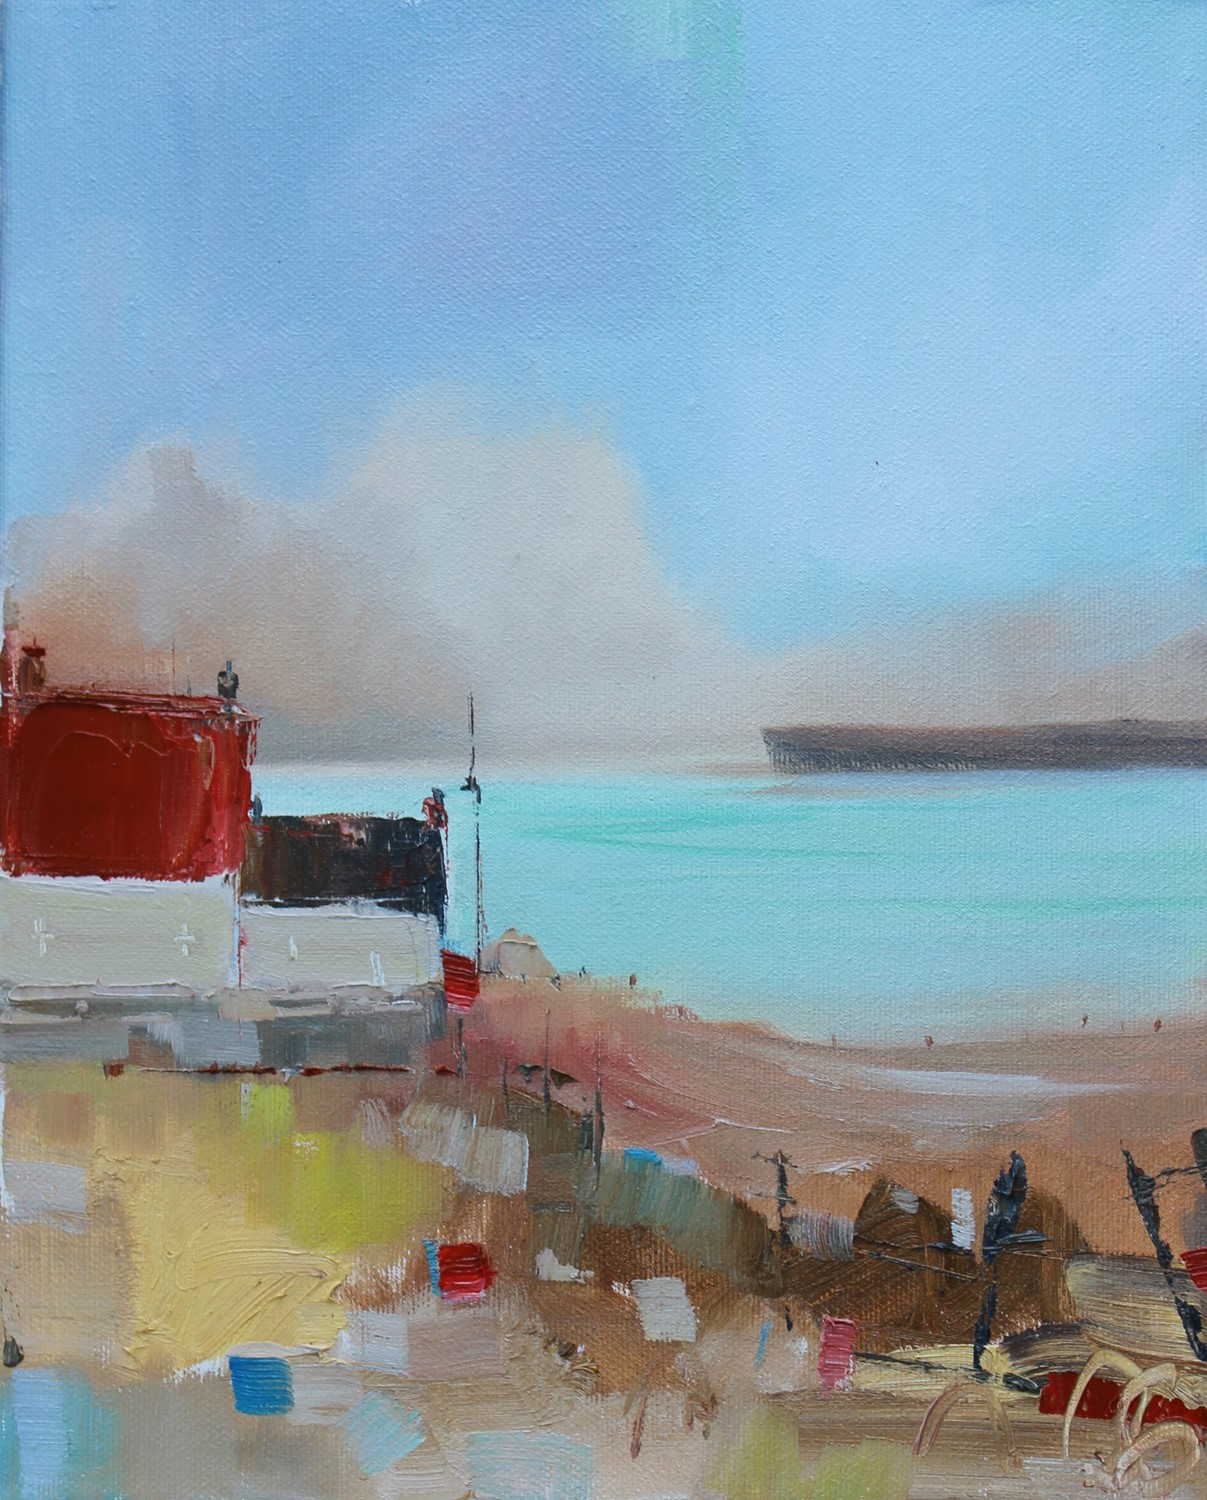 'Croft on the Coast' by artist Rosanne Barr